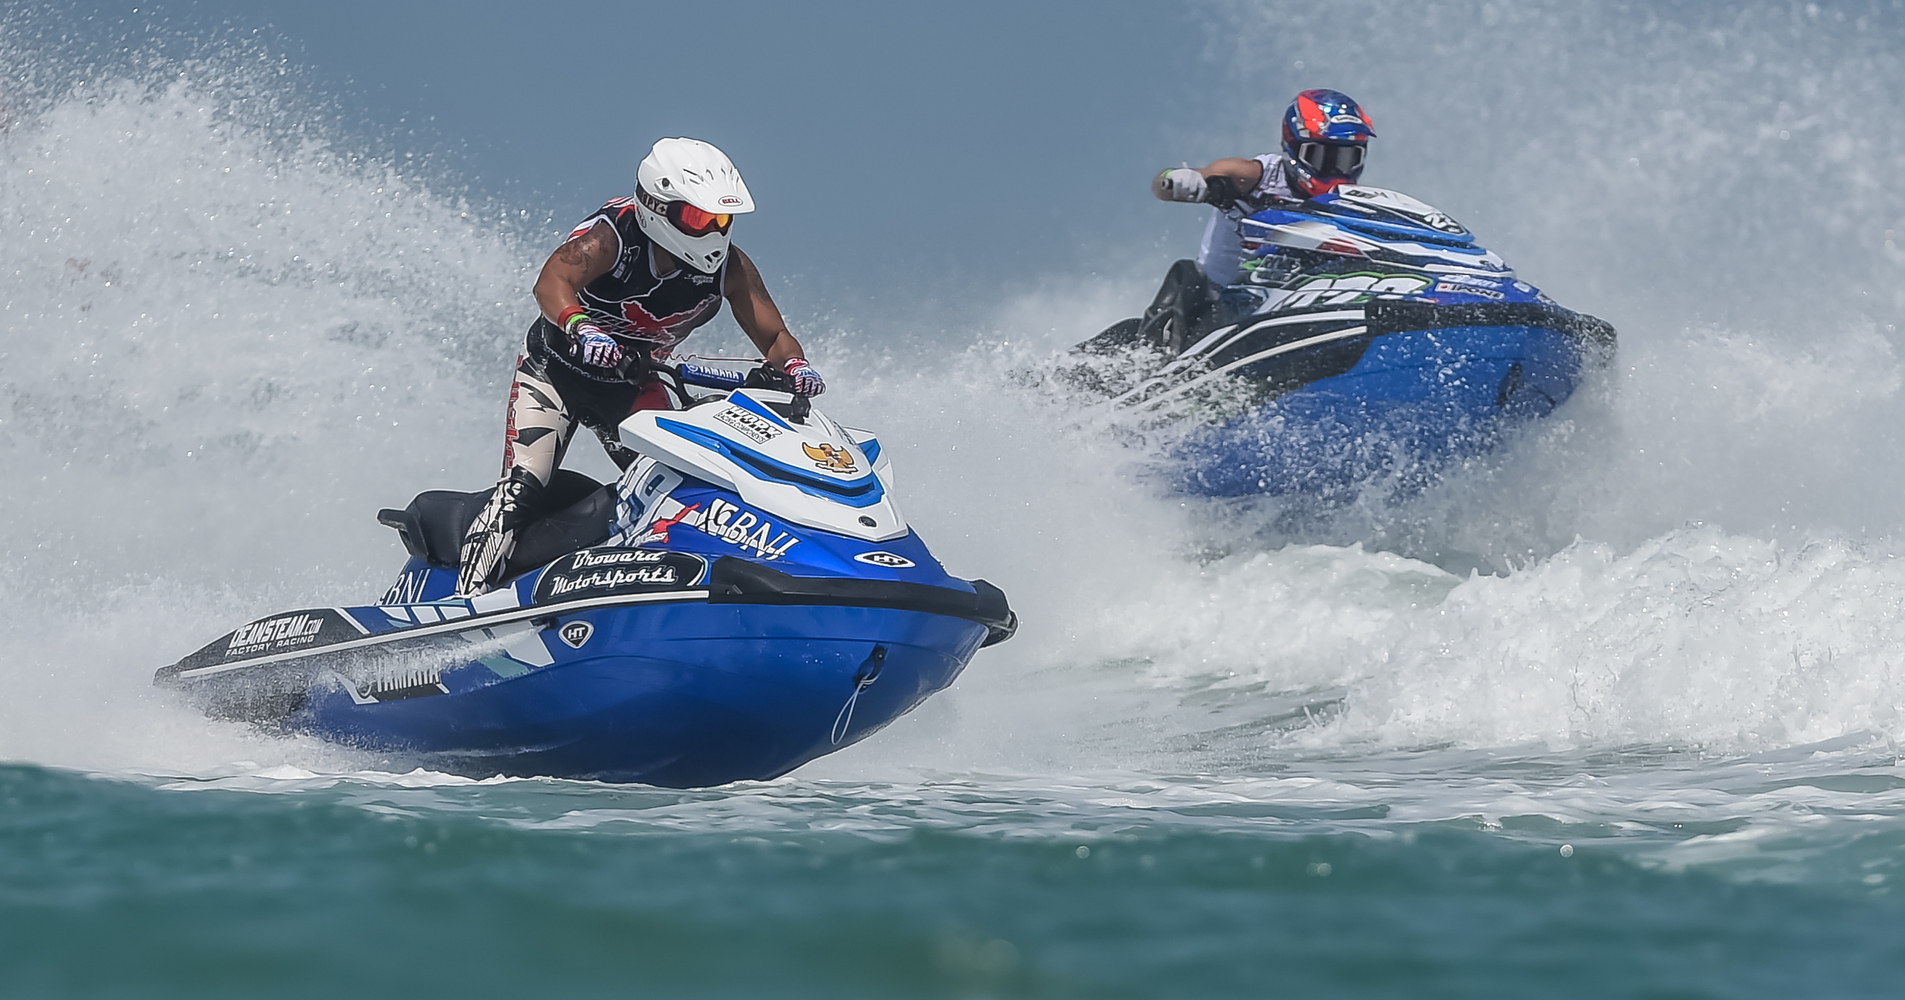 There were some huge waves in Daytona Beach that made for an excellent weekend of racing